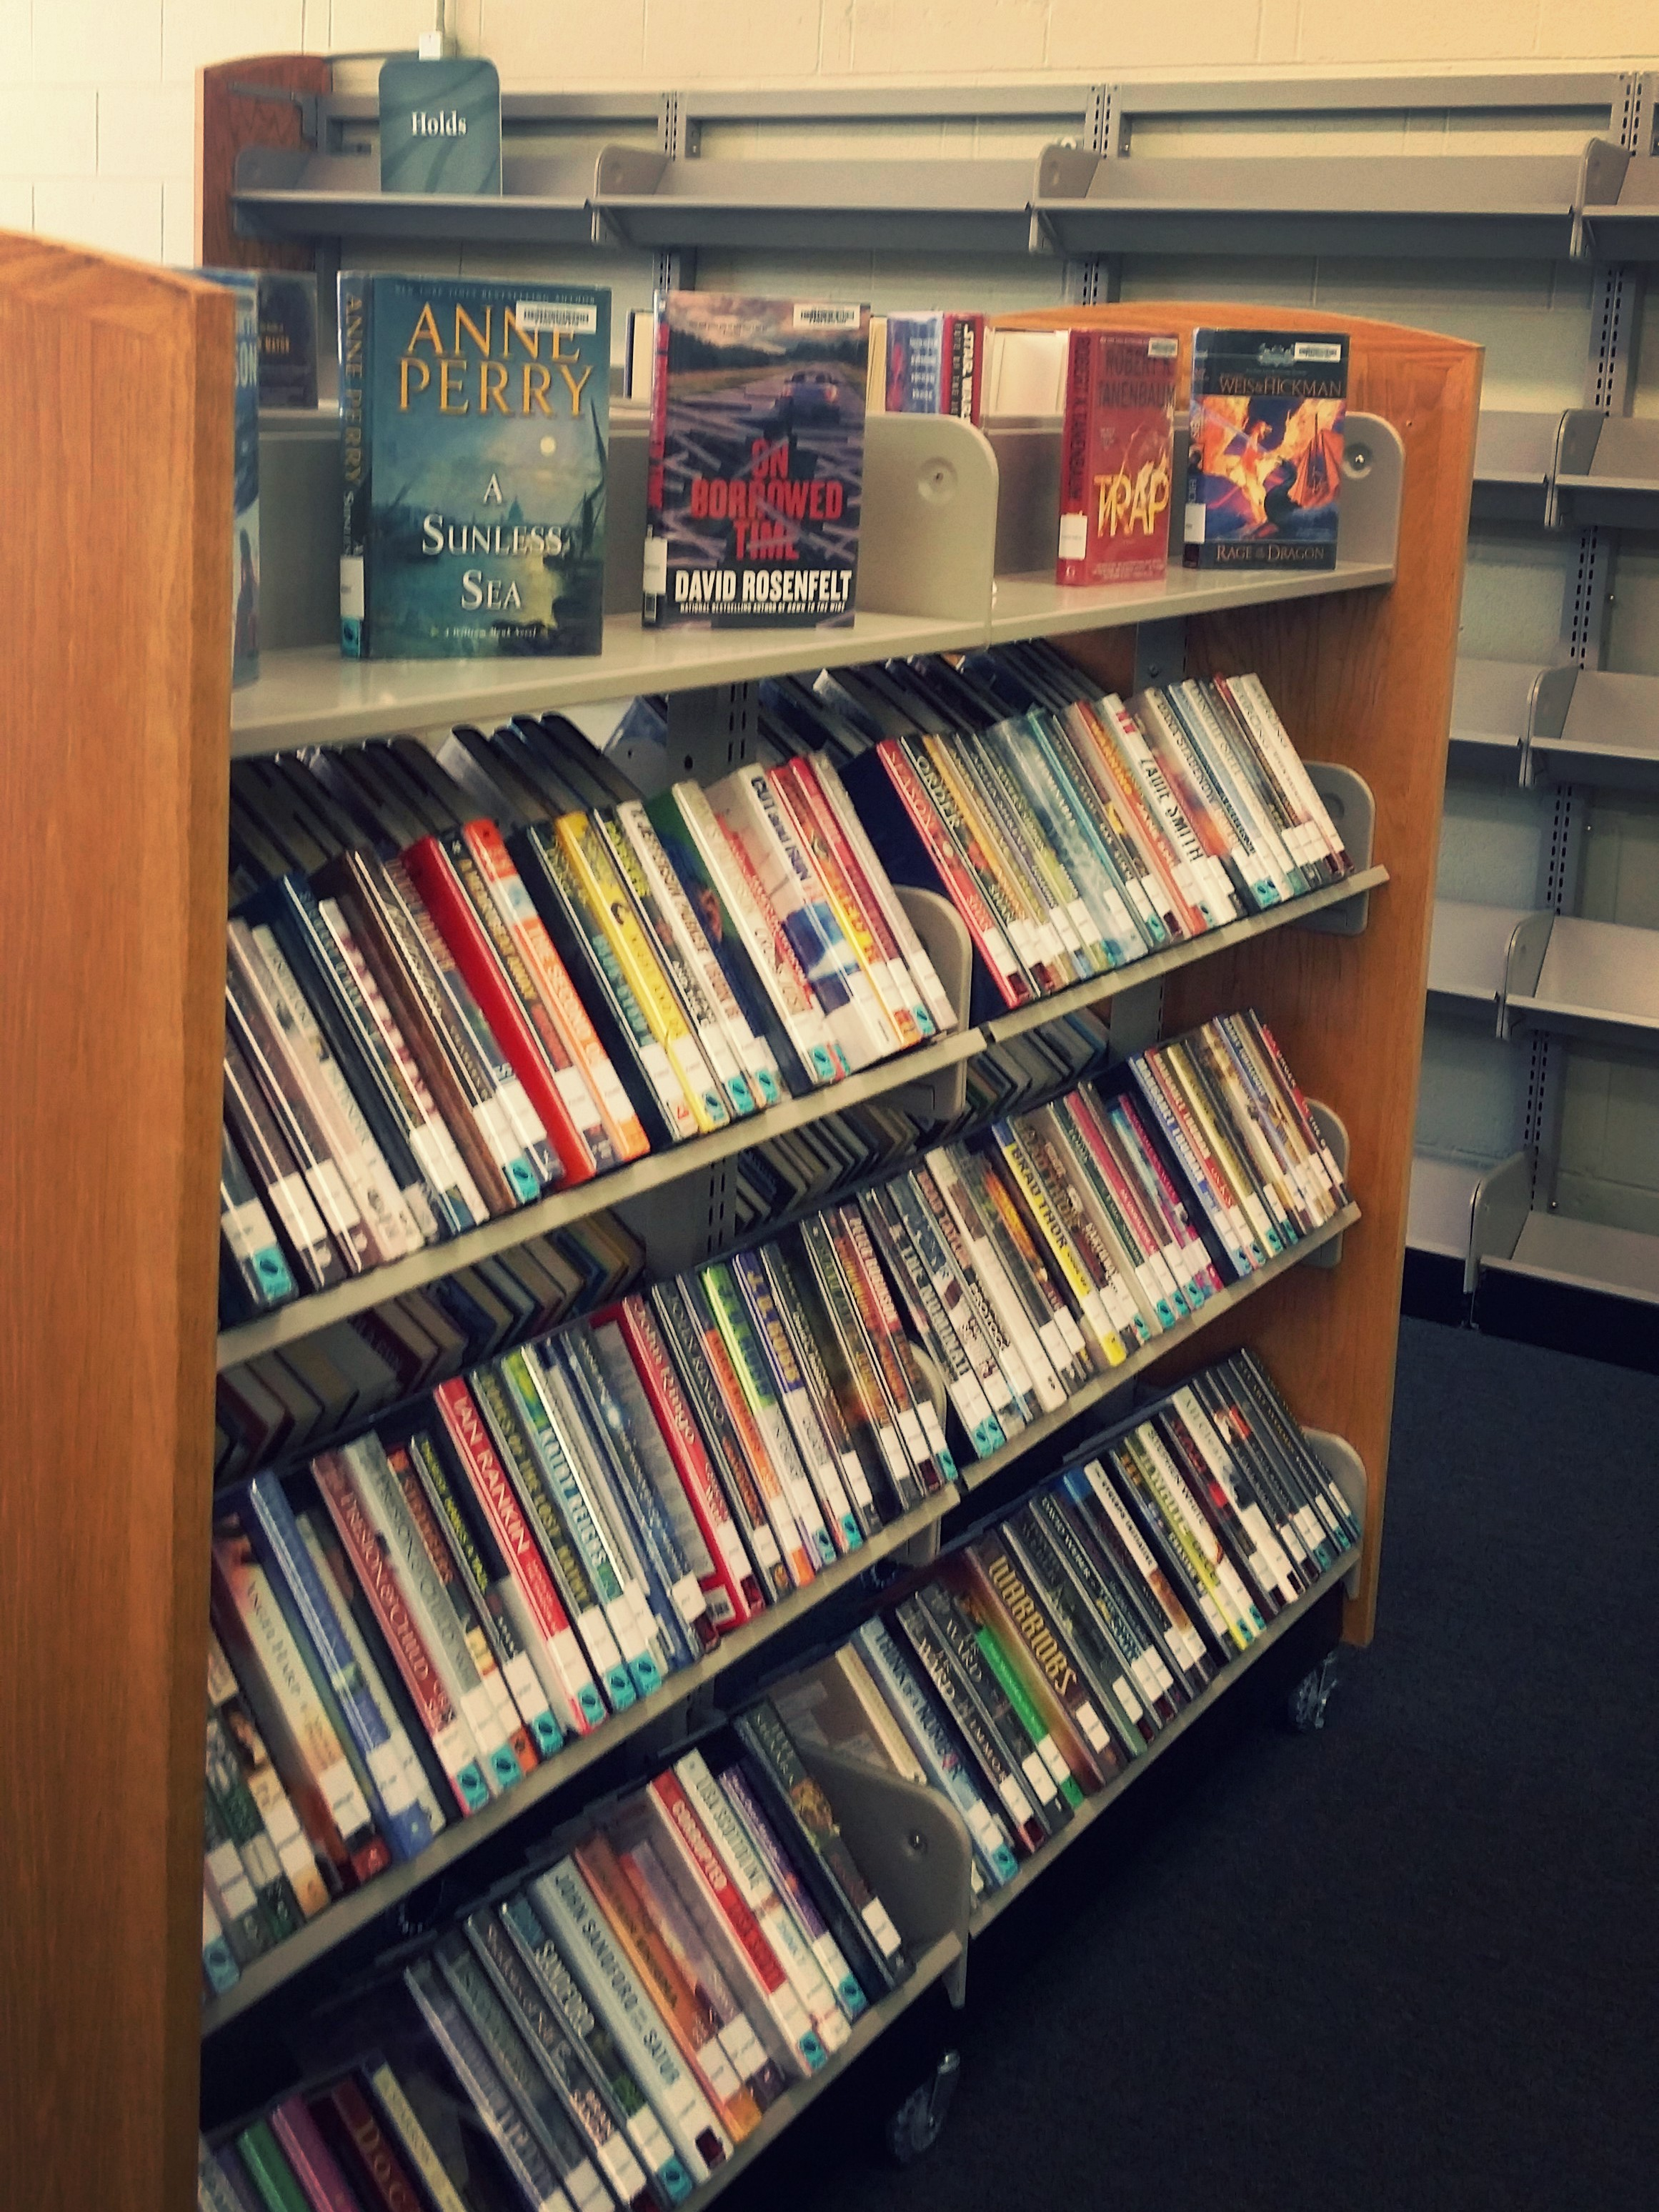 Goodwill's Career Connection Center to house Lincoln Park Library